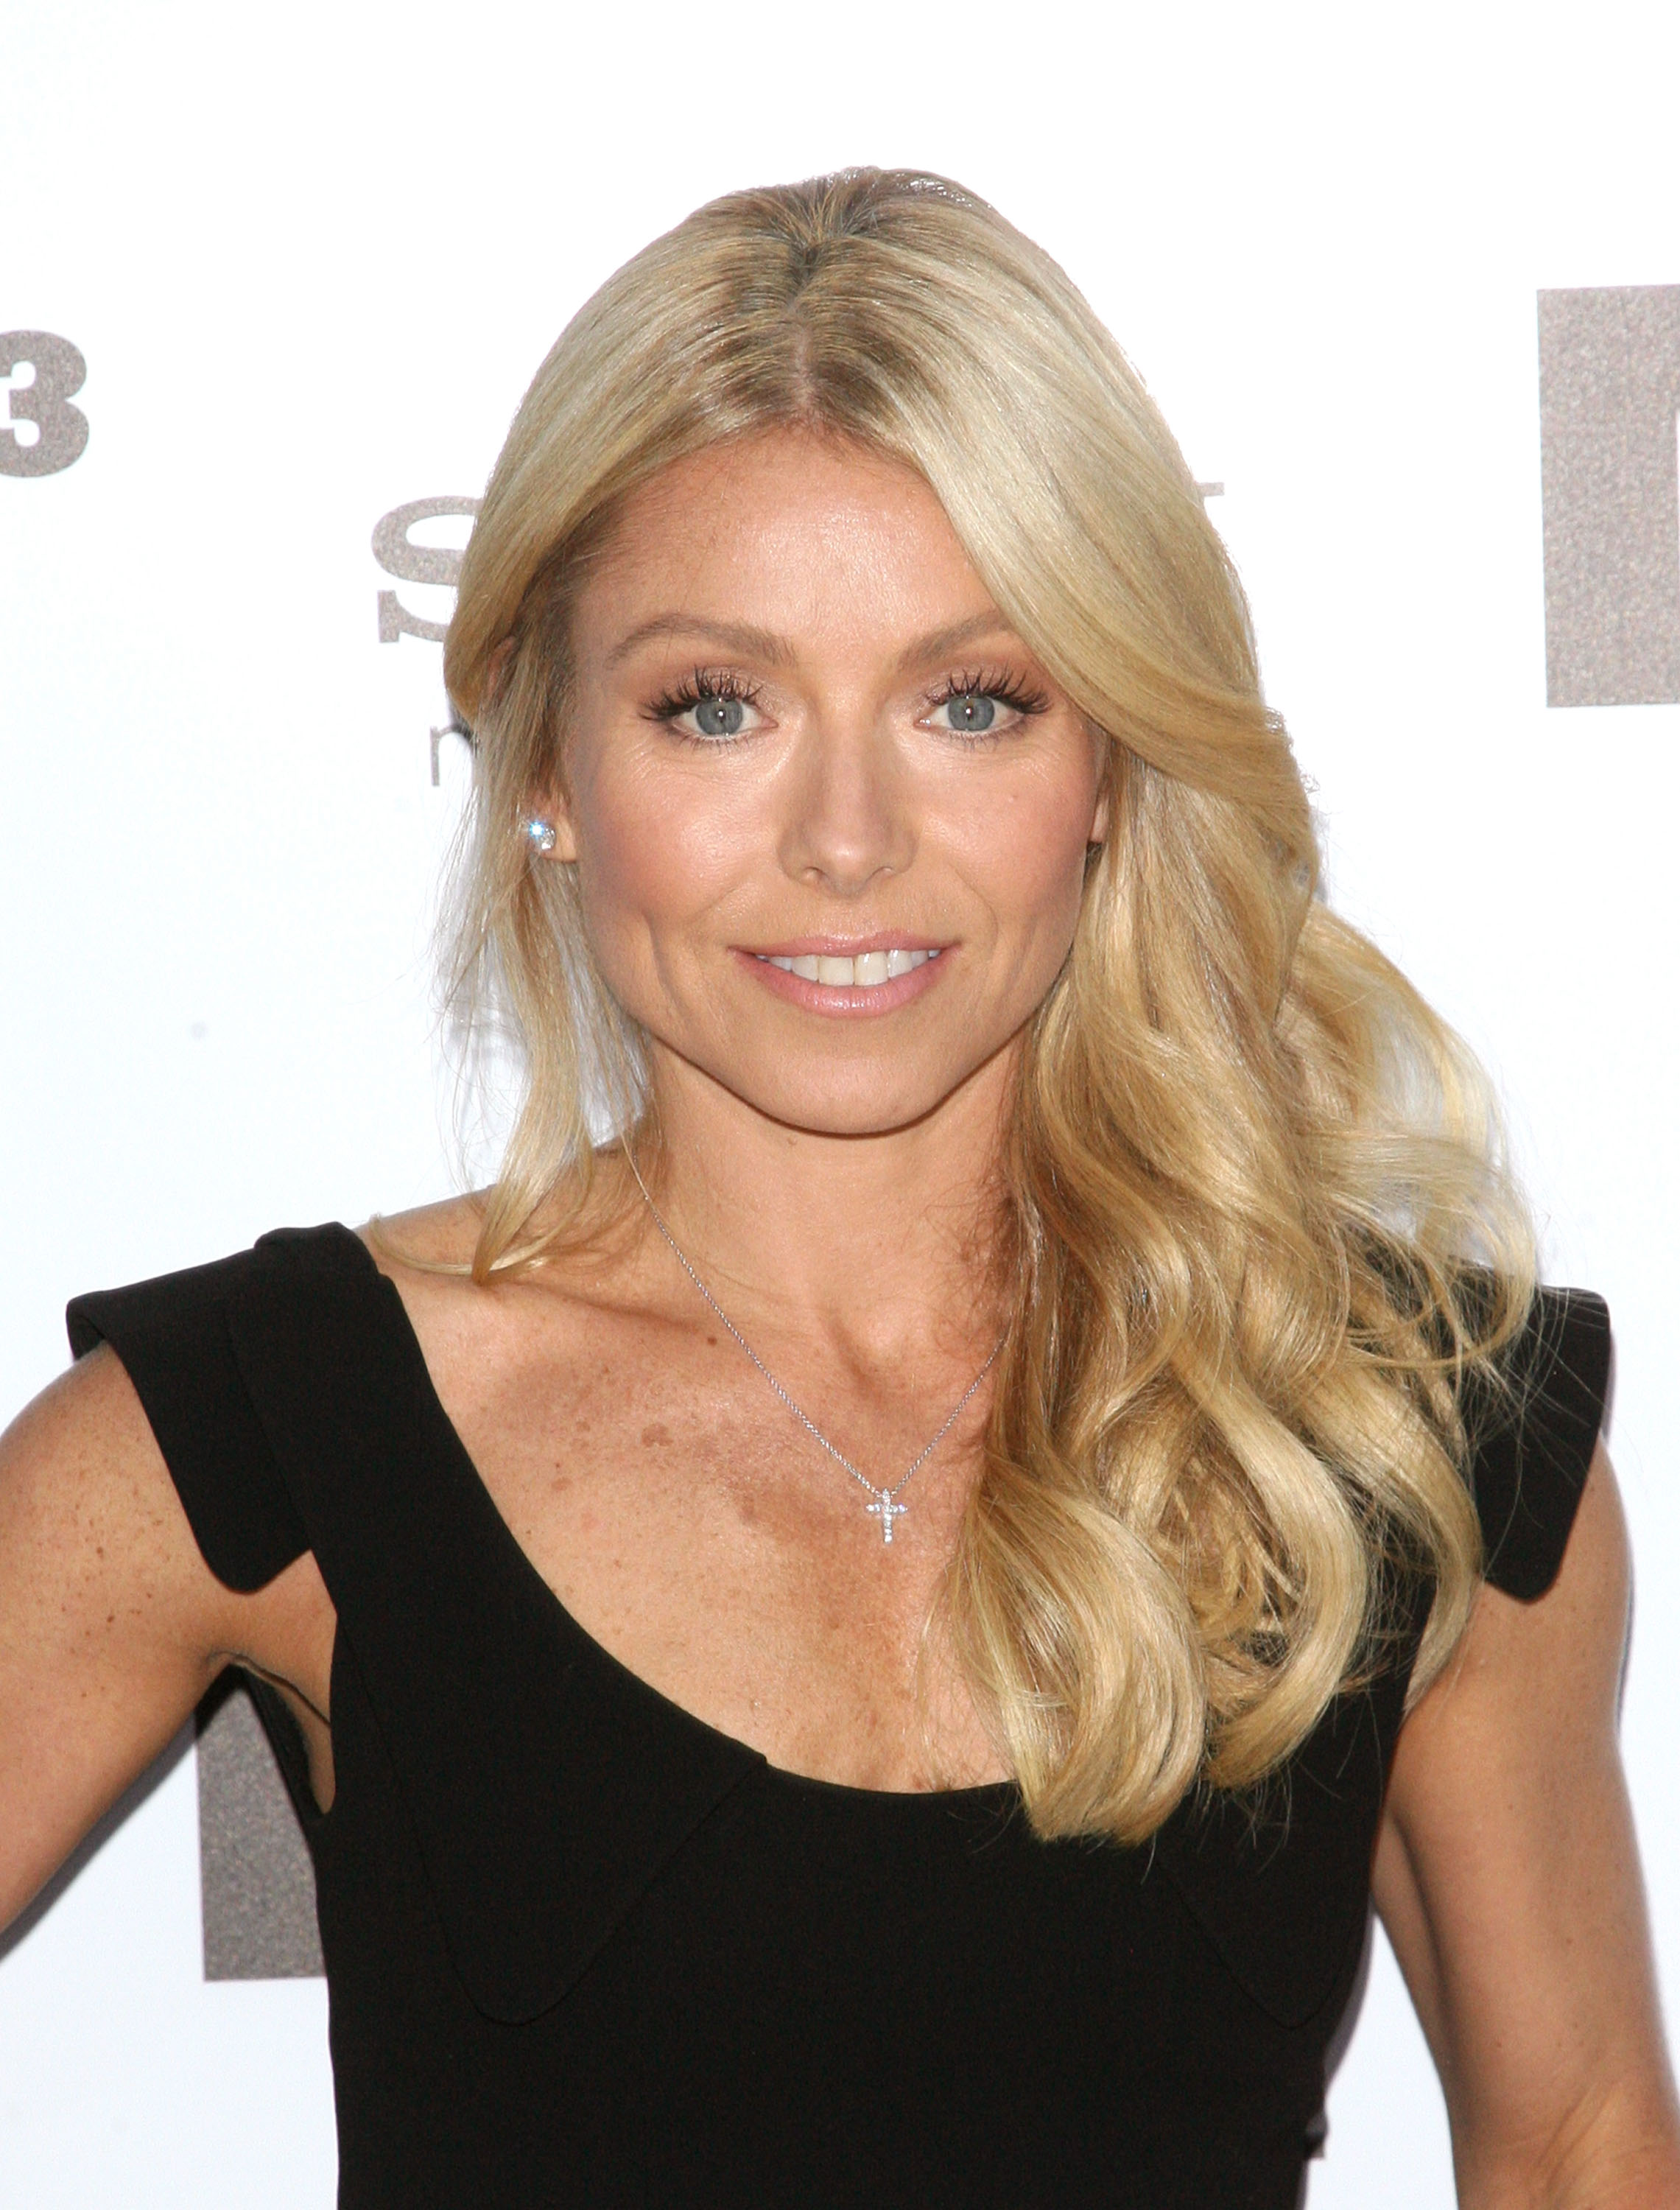 The 46-year old daughter of father Joseph Ripa and mother Esther Ripa, 157 cm tall Kelly Ripa in 2017 photo